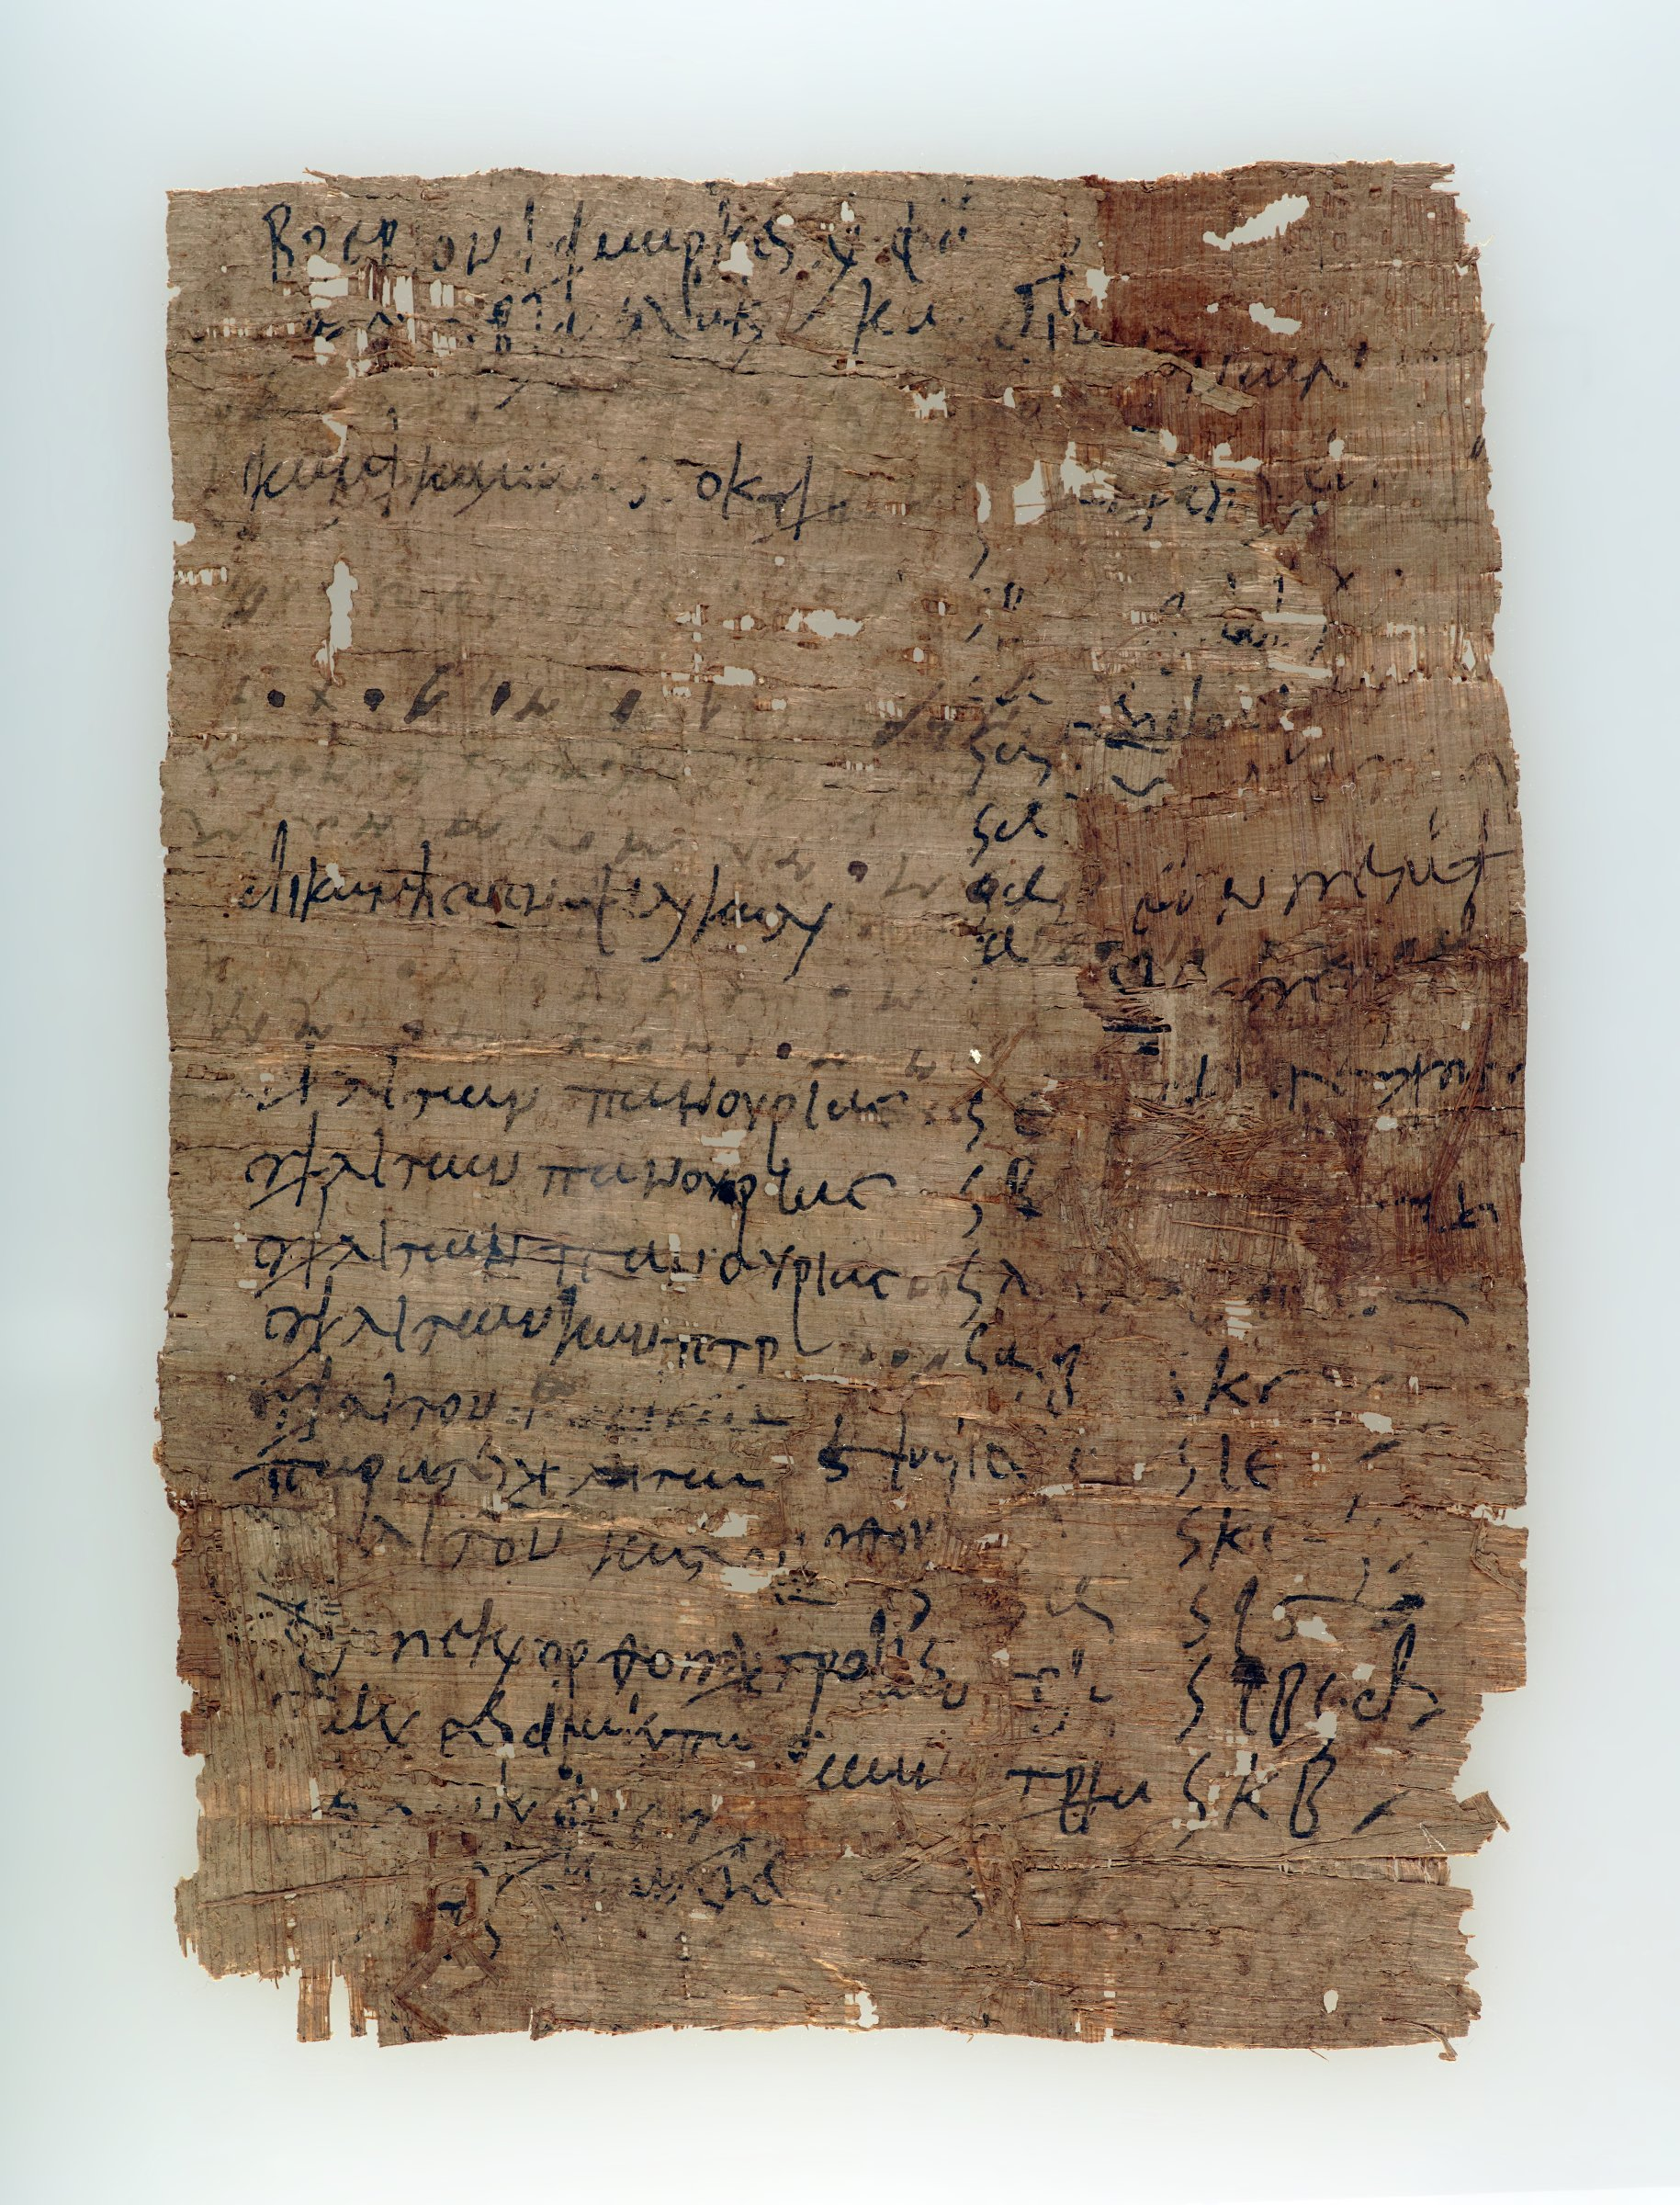 Papyrus fragment with Greek script. The text is an inventory of garments with payments in money.